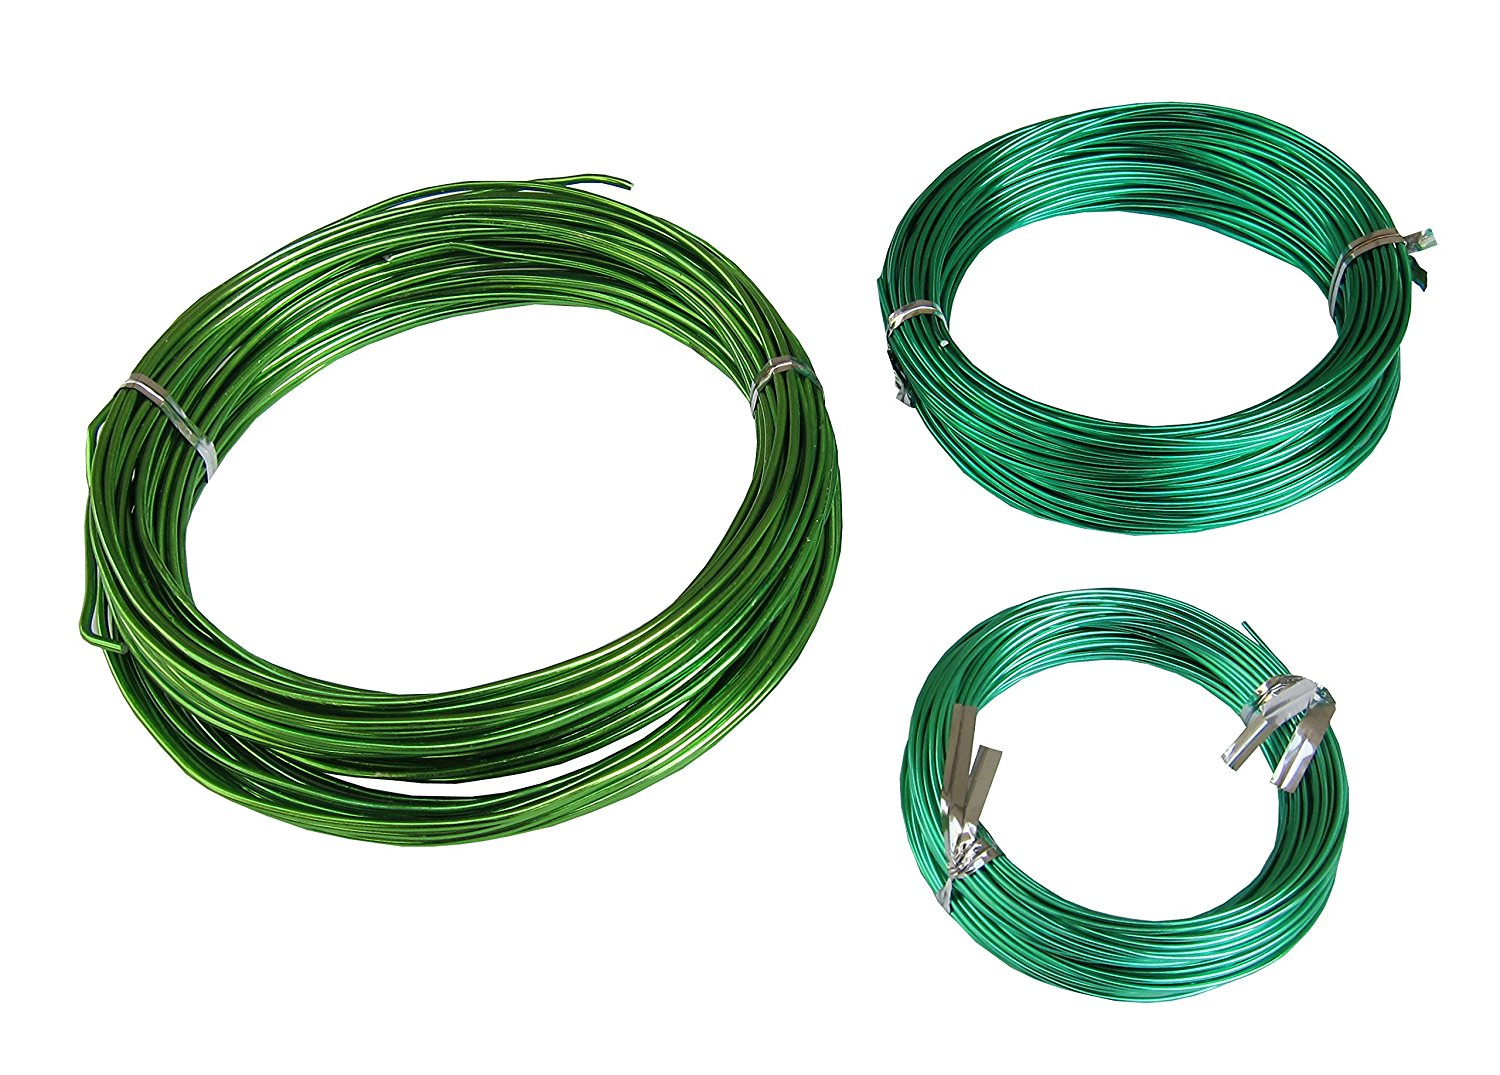 150Feet Anodized Aluminum Bonsai Training Wire 3-Size Starter Set, Multipurpose Crafting DIY Wires Ties - 1.0mm, 1.5mm, 2.0mm(Each 50Ft), Easy Bending Cutting, Quality Alu Tie Wire 3 Size Pack (Green)